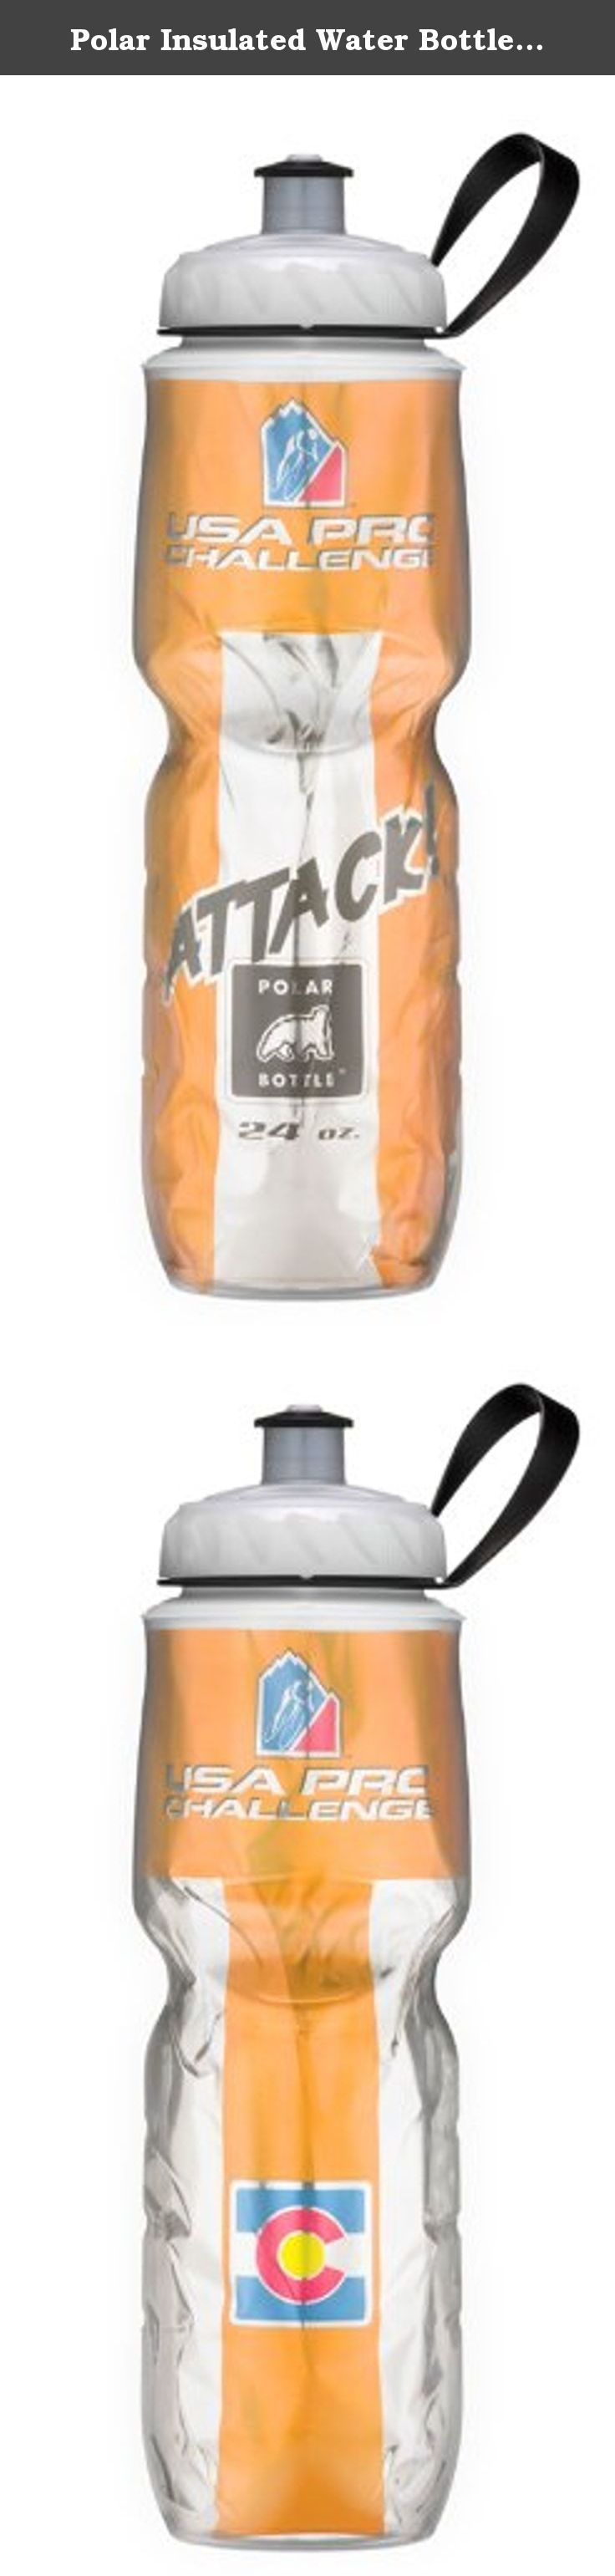 Polar Insulated Water Bottle (24-Ounce, USA Pro Cycling Challenge Orange Aggressive Rider Jersey). Polar Bottle is the original insulated plastic sport bottle and has been keeping liquids colder, longer, since 1994. The bottle has evolved in the years since with brightly colored foil liners and patterns and an innovative removable valve system. Made in America, Polar Bottle is popular throughout the world. Combining the thermal properties of an insulated vacuum bottle with the lightweight...